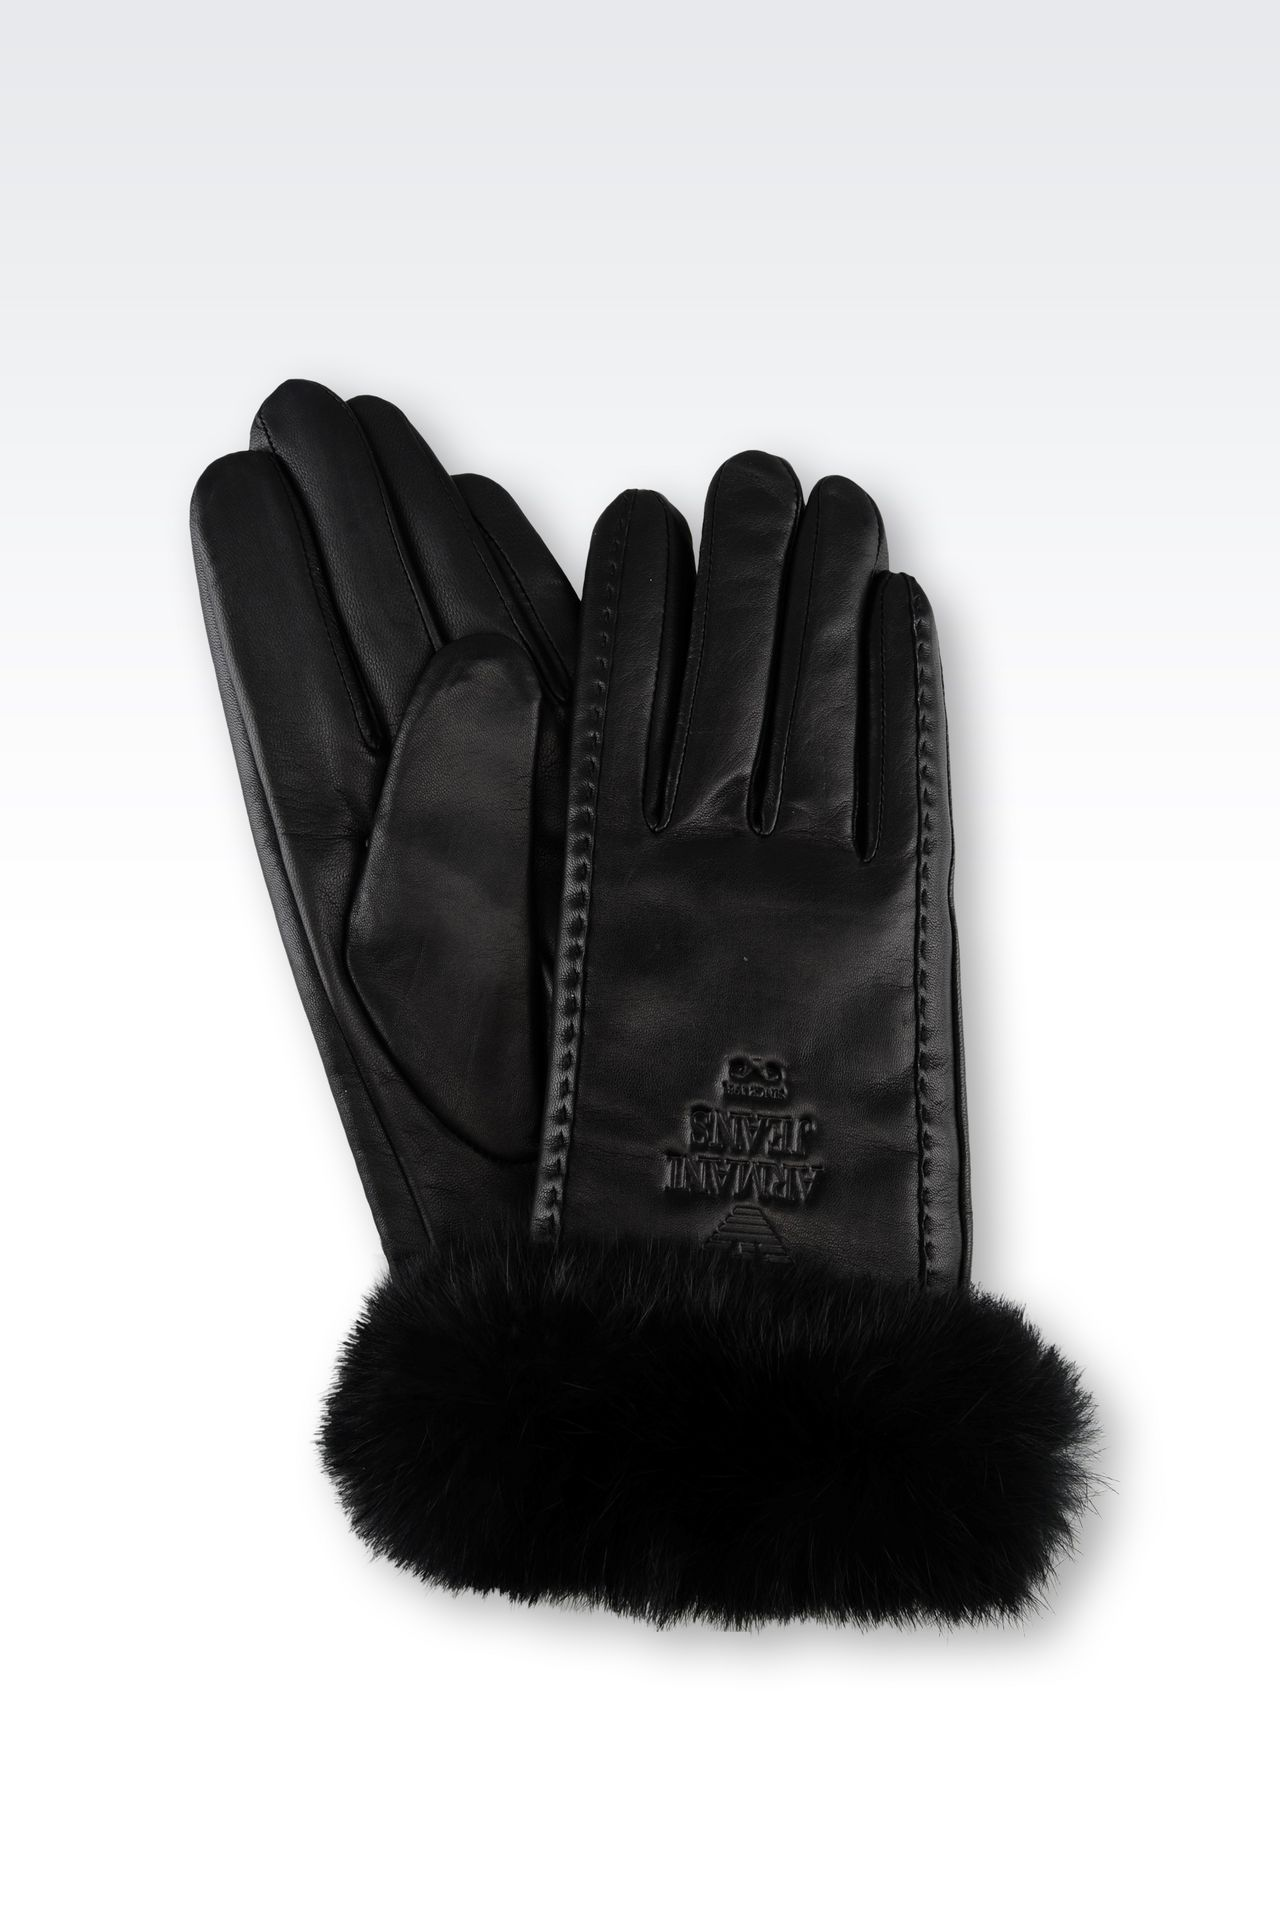 Armani exchange black leather gloves - Leather And Rabbit Fur Gloves Gloves Women By Armani 0